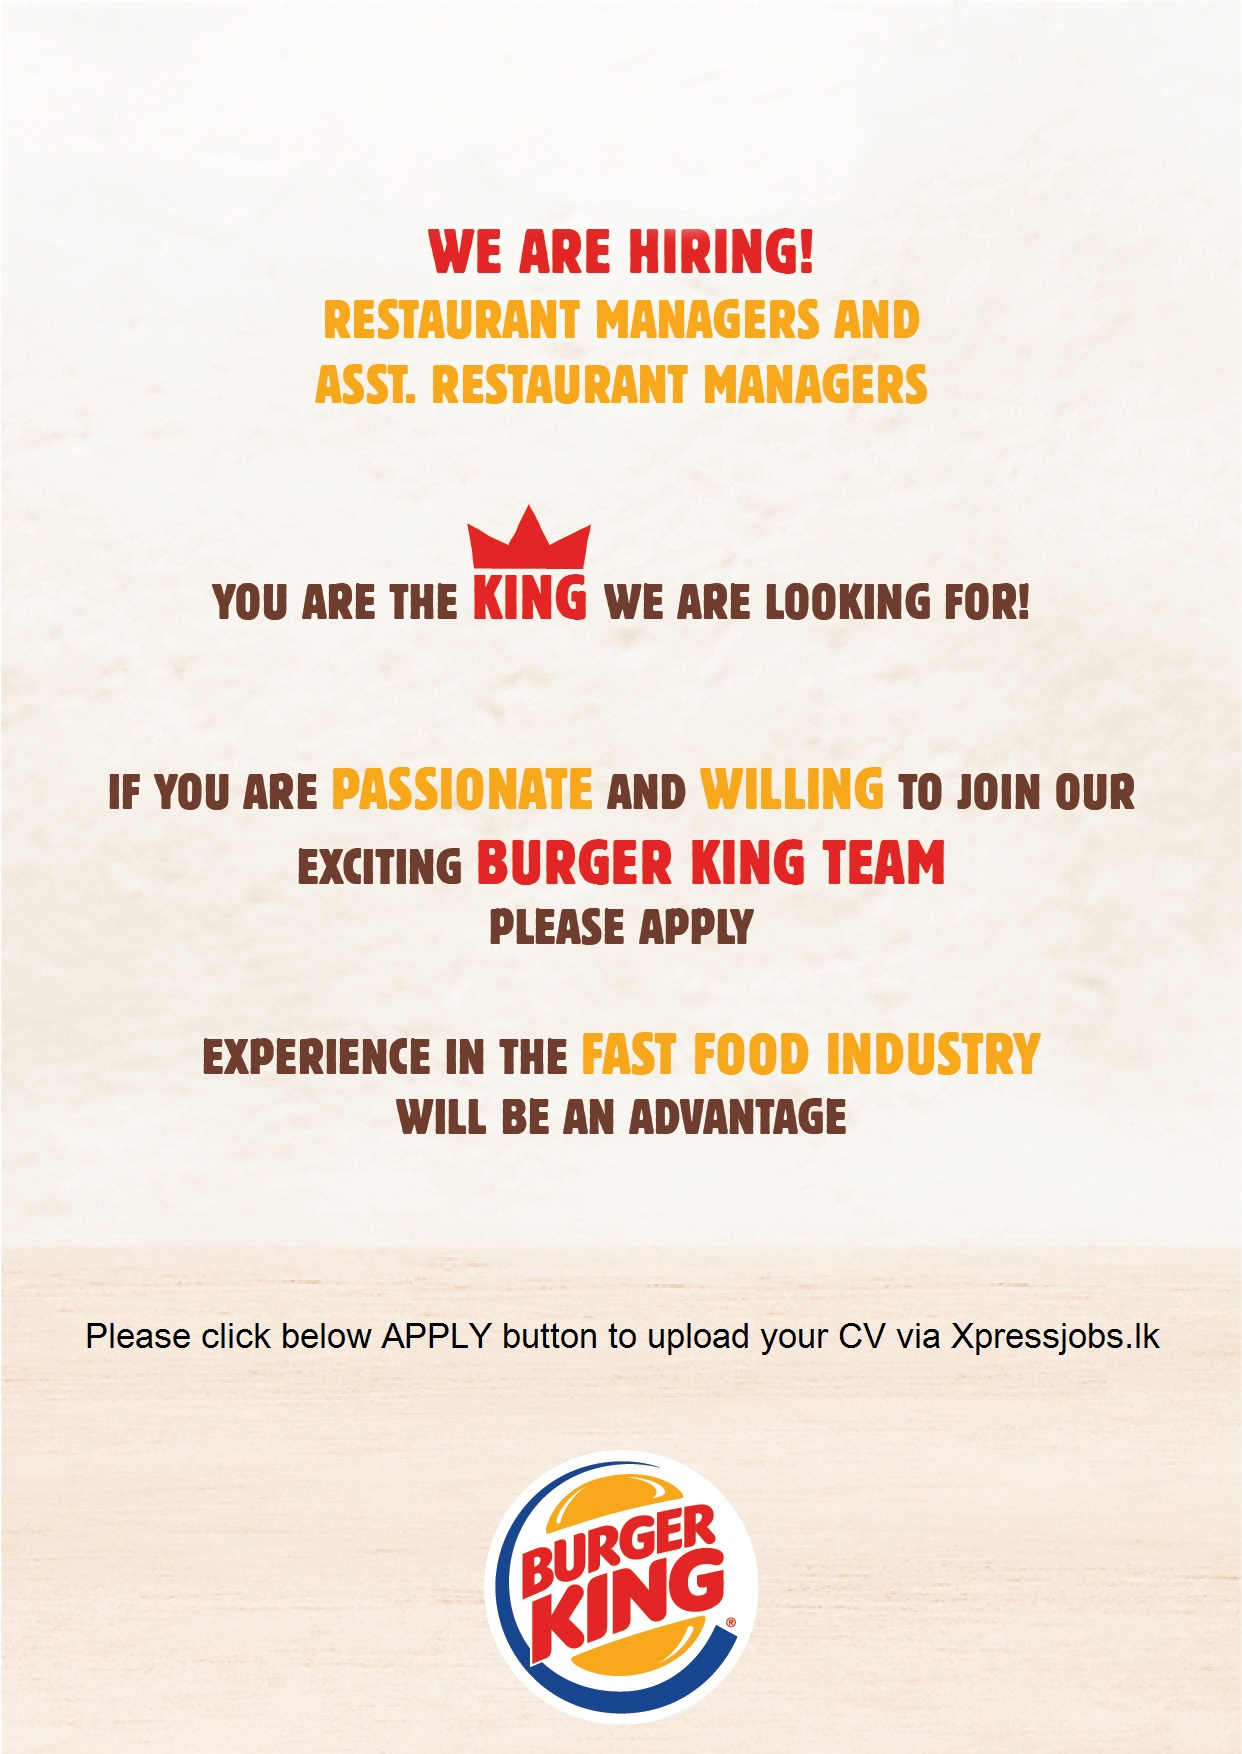 restaurant managers asst managers supervisors burger king job image